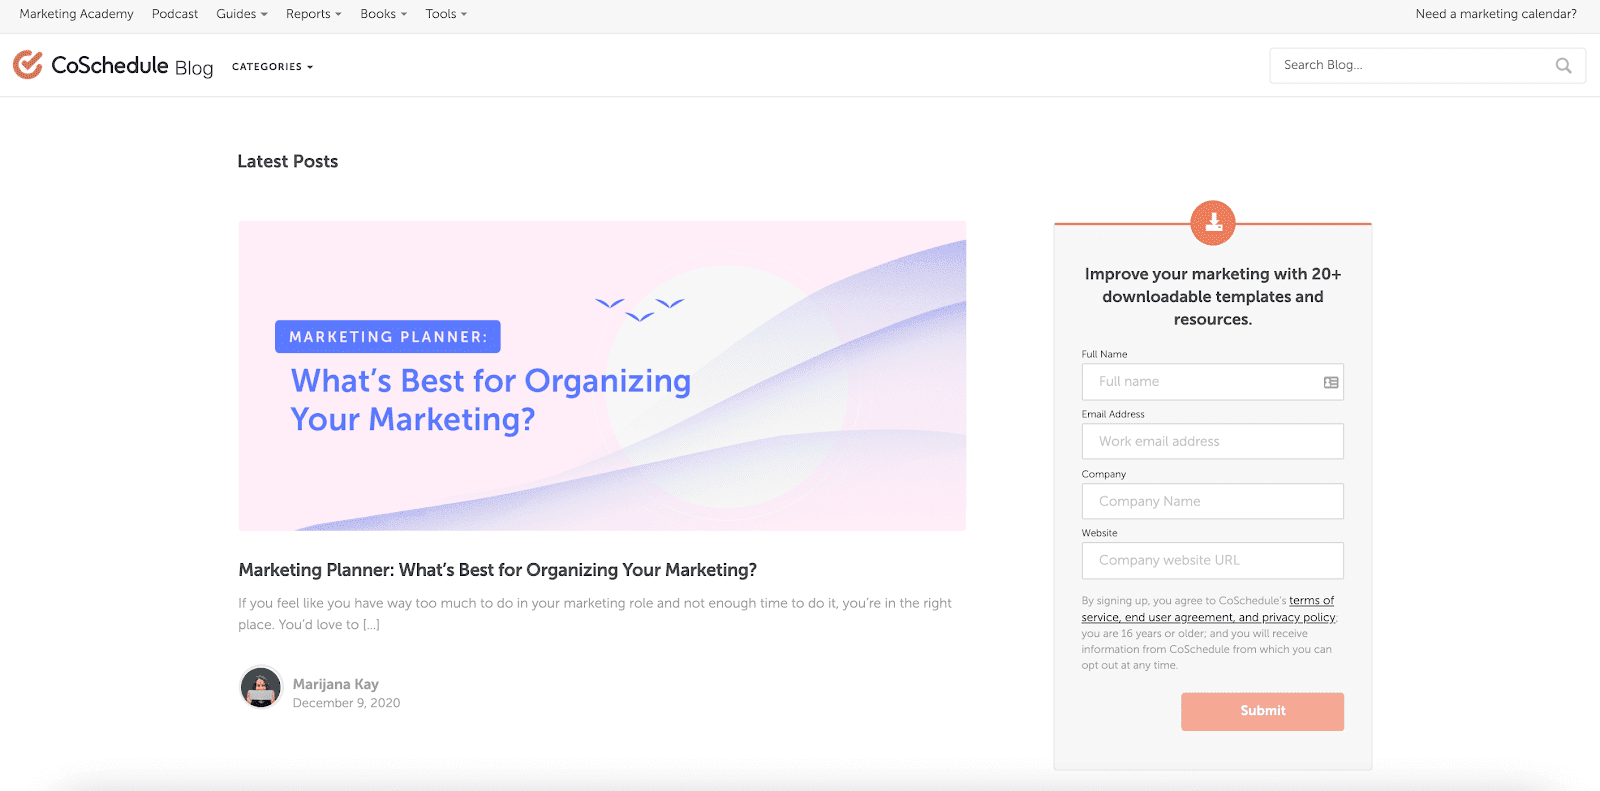 CoSchedule blog page